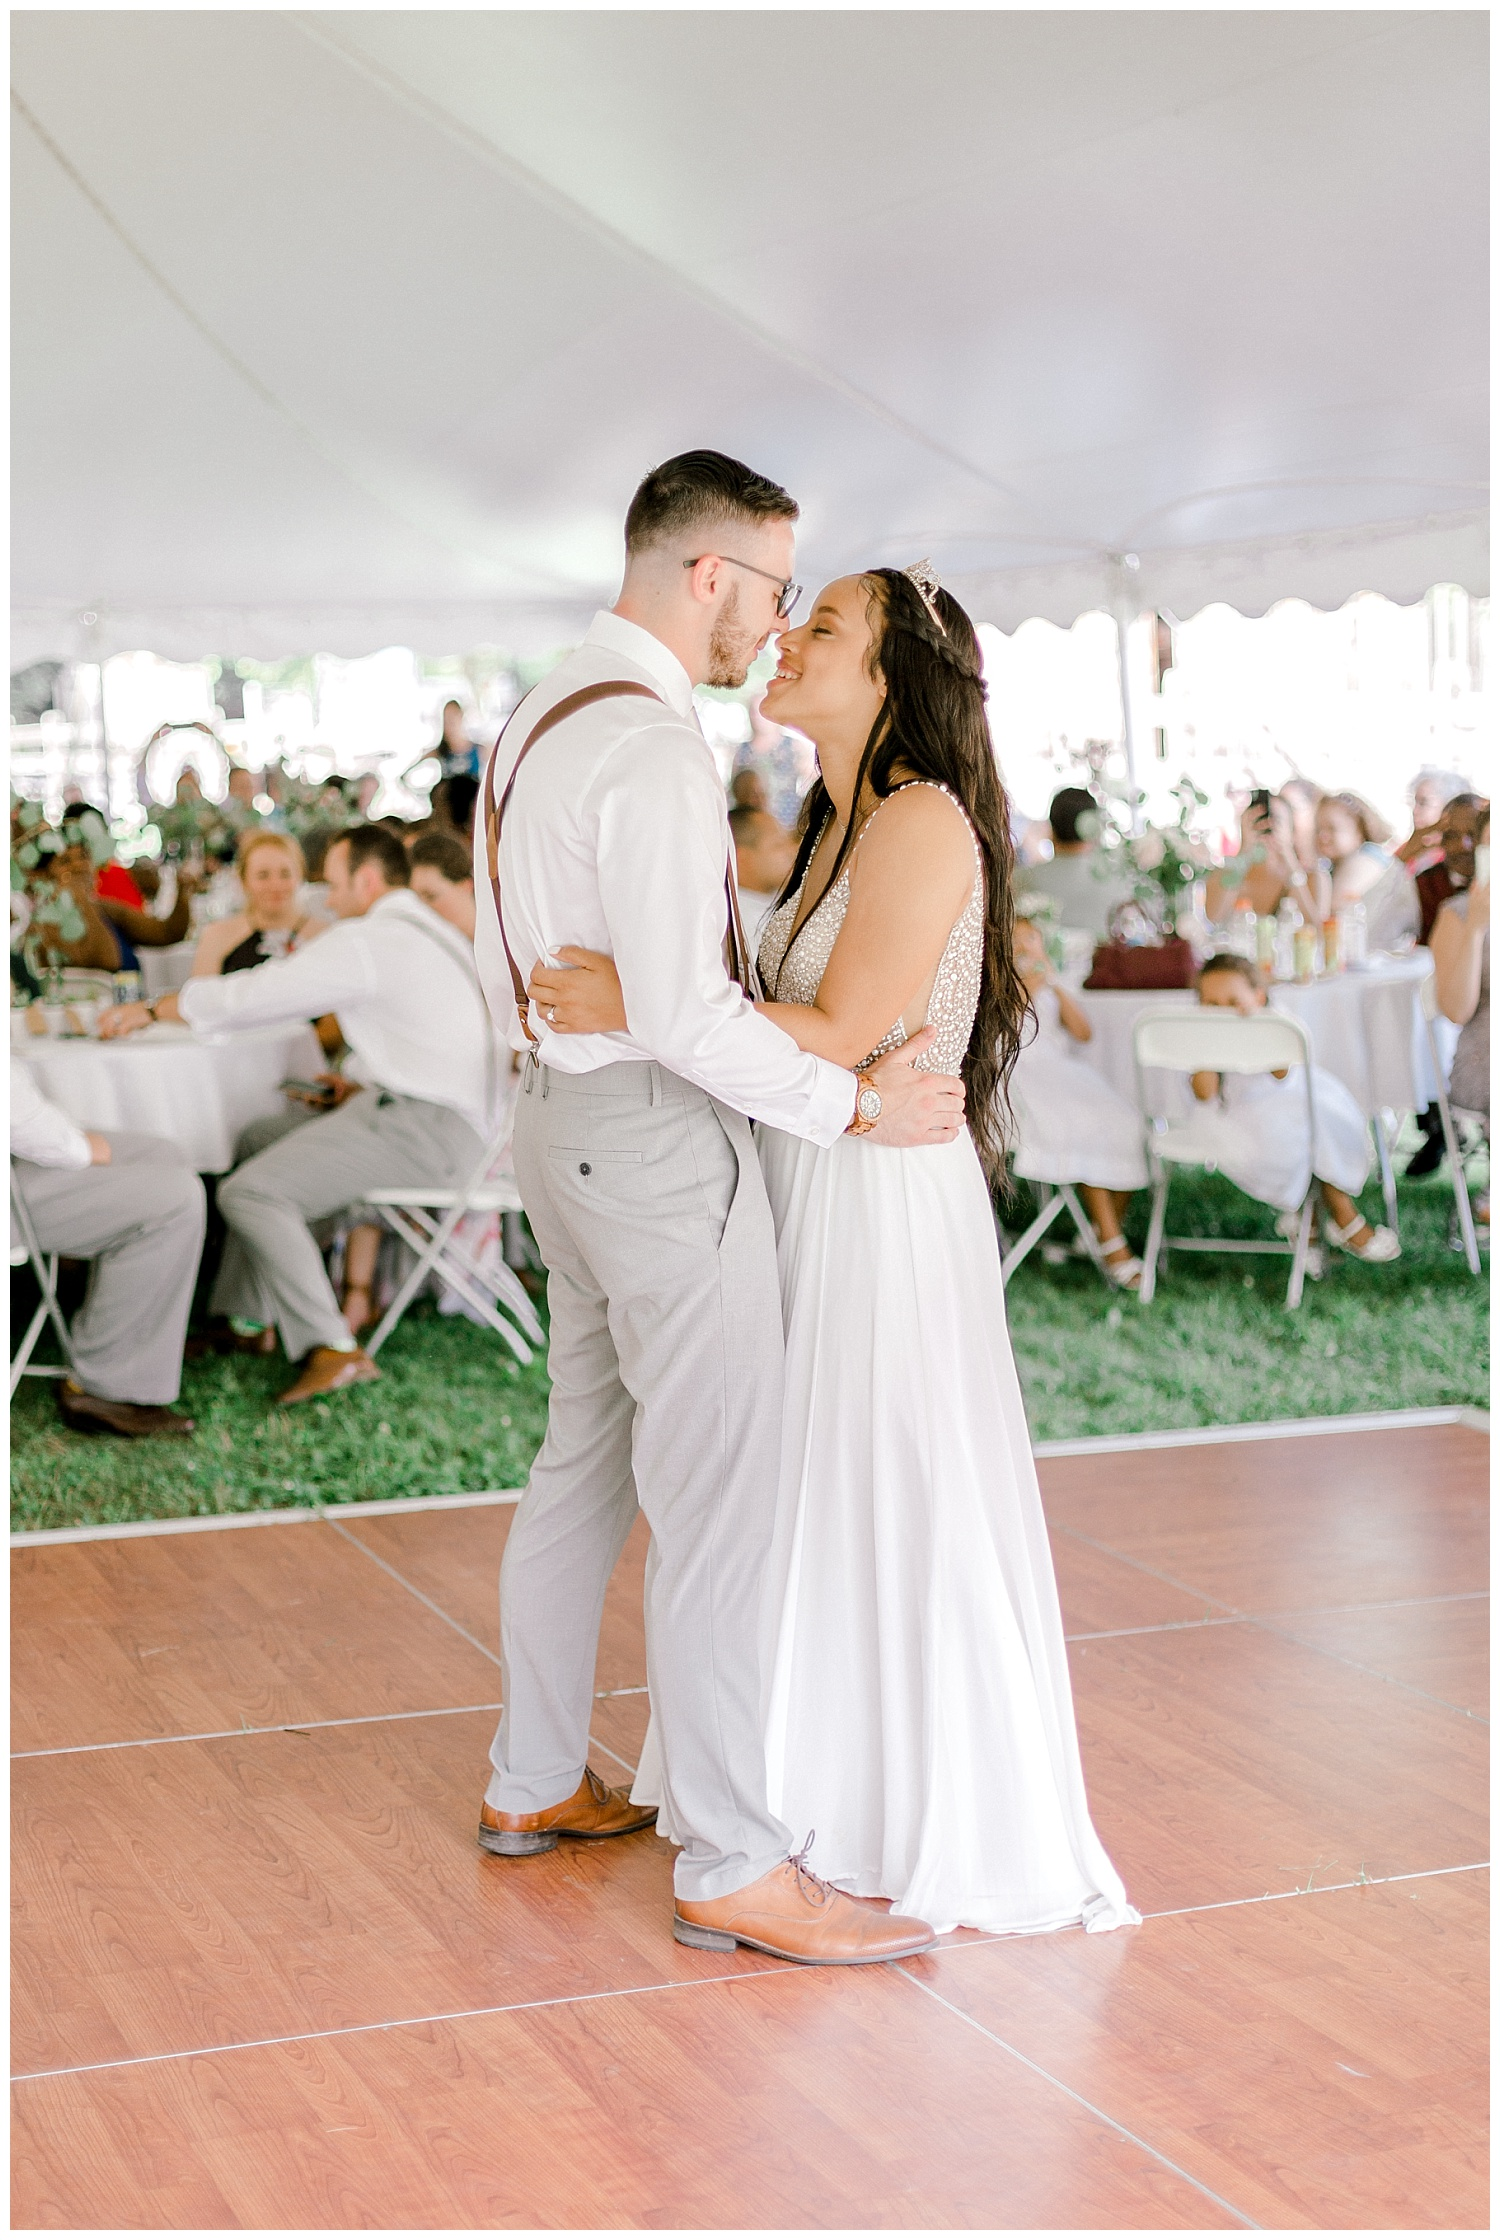 Olive green and white rustic barn wedding at burnside plantation in bethlehem pennsylvania by PA based destination wedding and lifestyle photographer Lytle photography (57).jpg